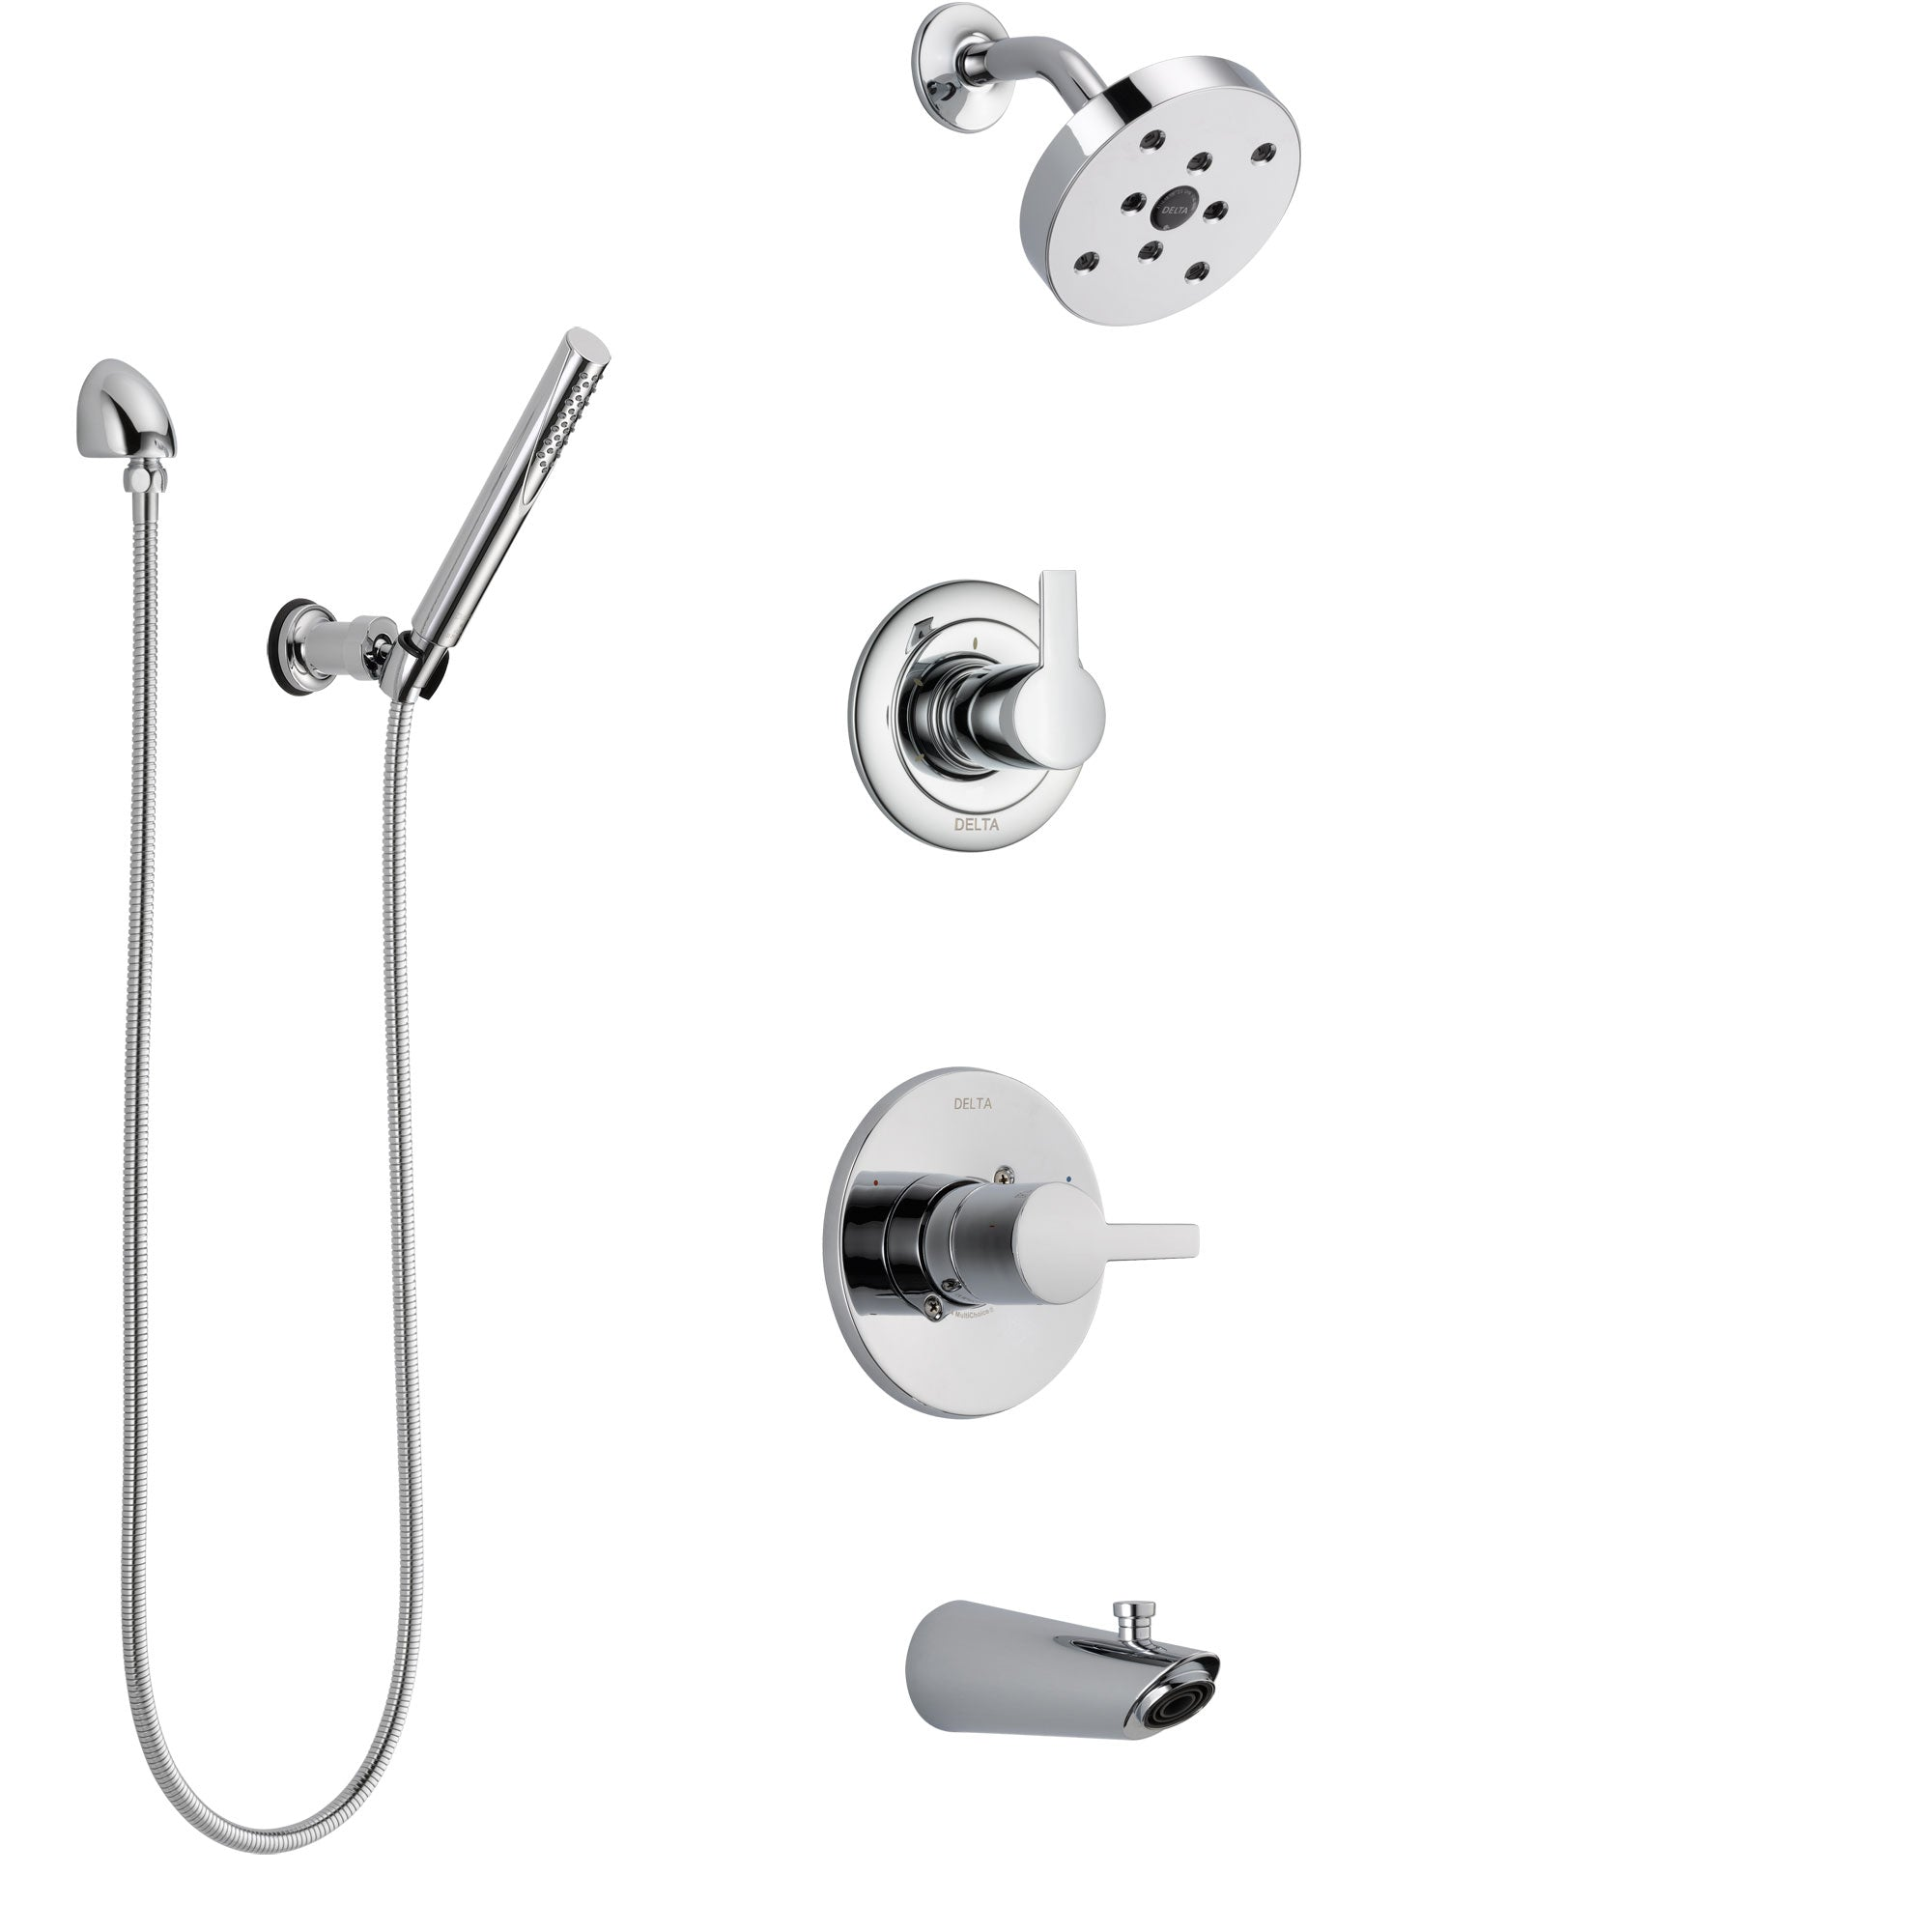 Delta Compel Chrome Finish Tub and Shower System with Control Handle, 3-Setting Diverter, Showerhead, and Hand Shower with Wall Bracket SS144616